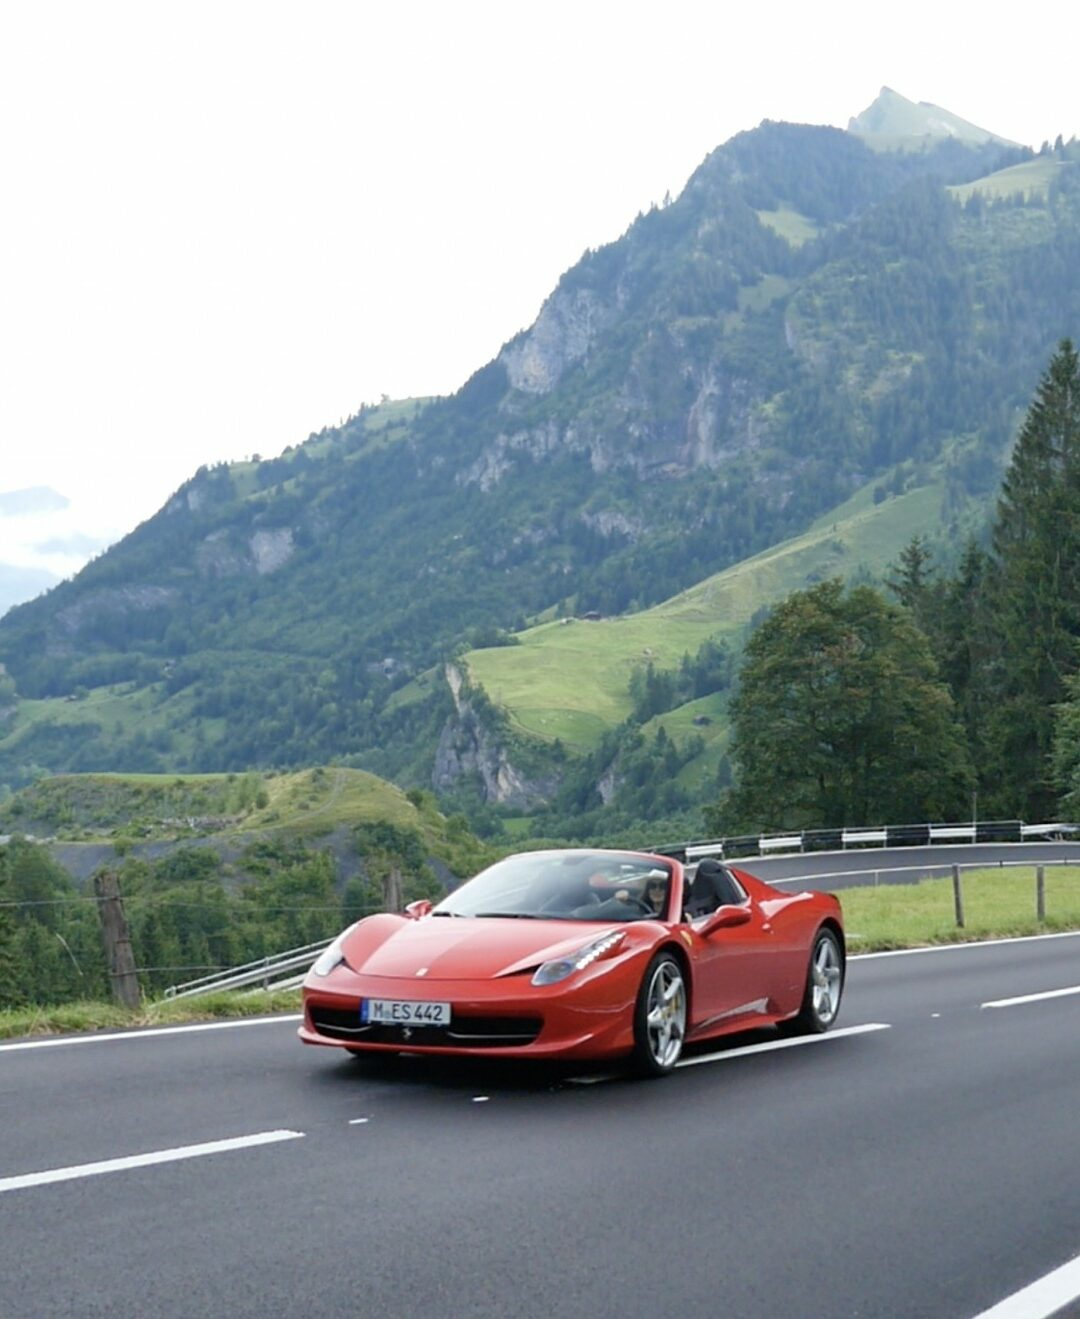 Ferrari Switzerland Tourism